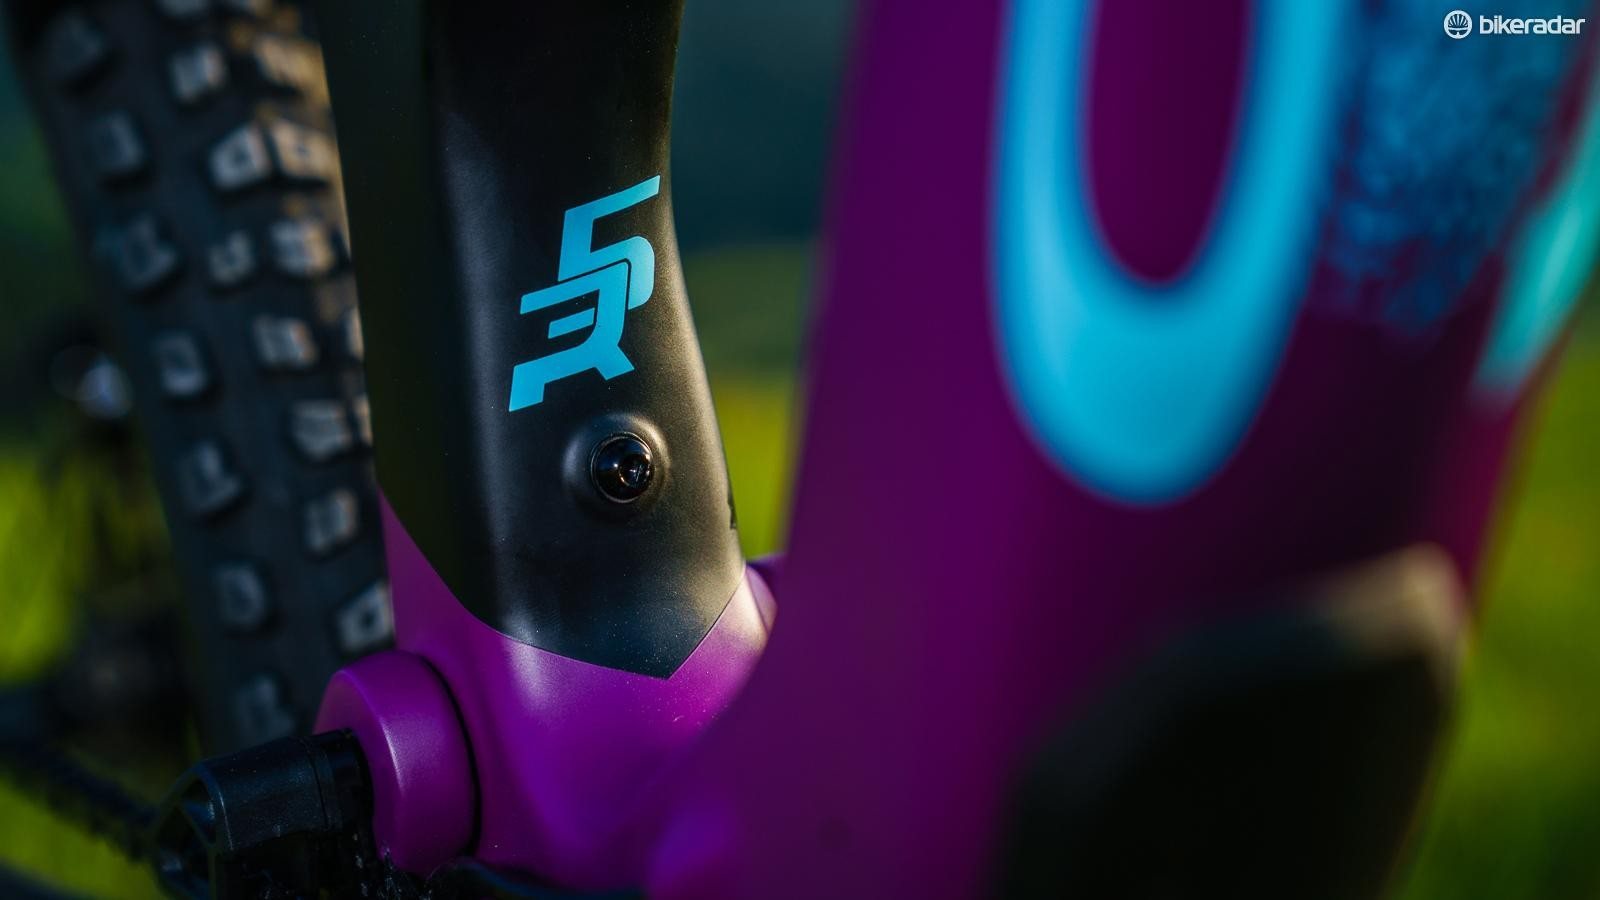 This bolt on the seat tube secures a specially designed tool pouch, right above the BB, keeping extra weight as low as possible